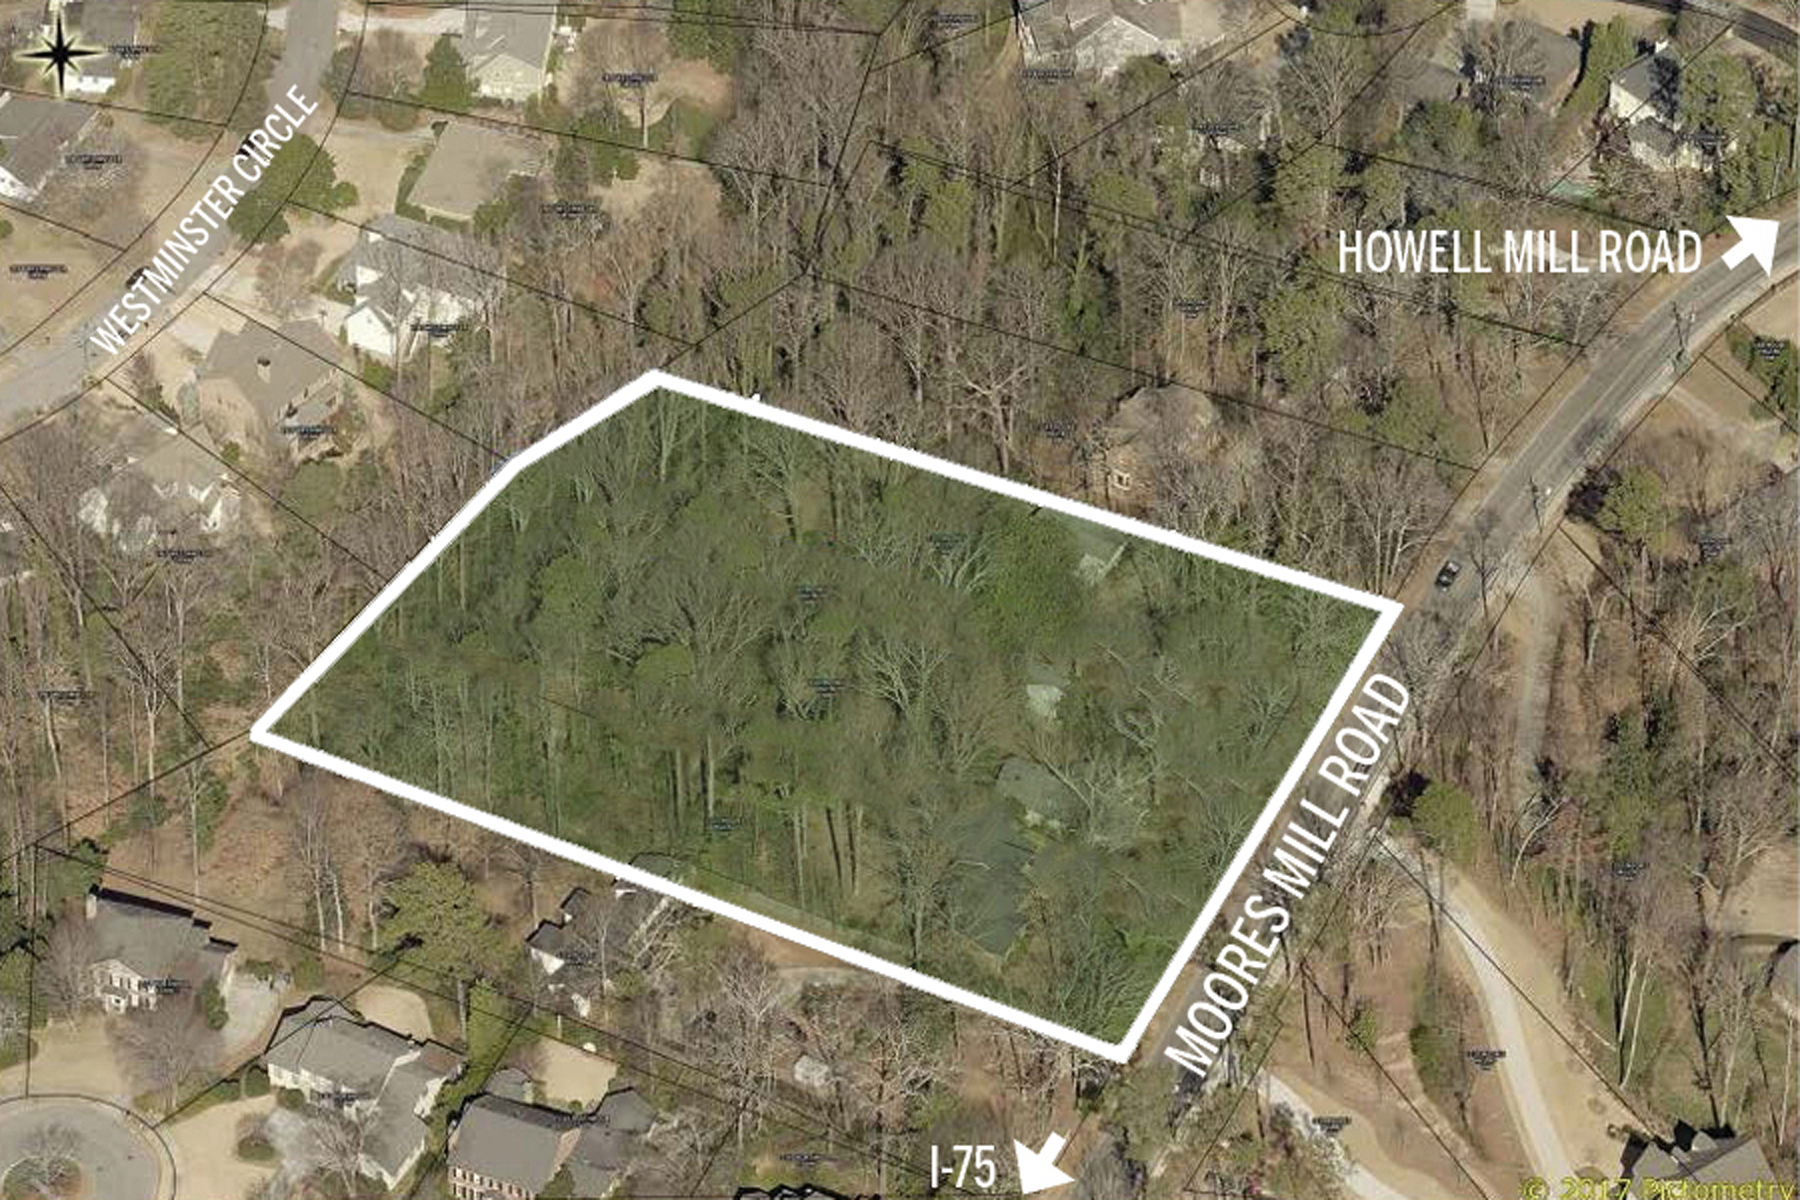 Land for Sale at Assemblage - Potential For 5-6 Lots 1101 Moores Mill Road NW Atlanta, Georgia 30327 United States